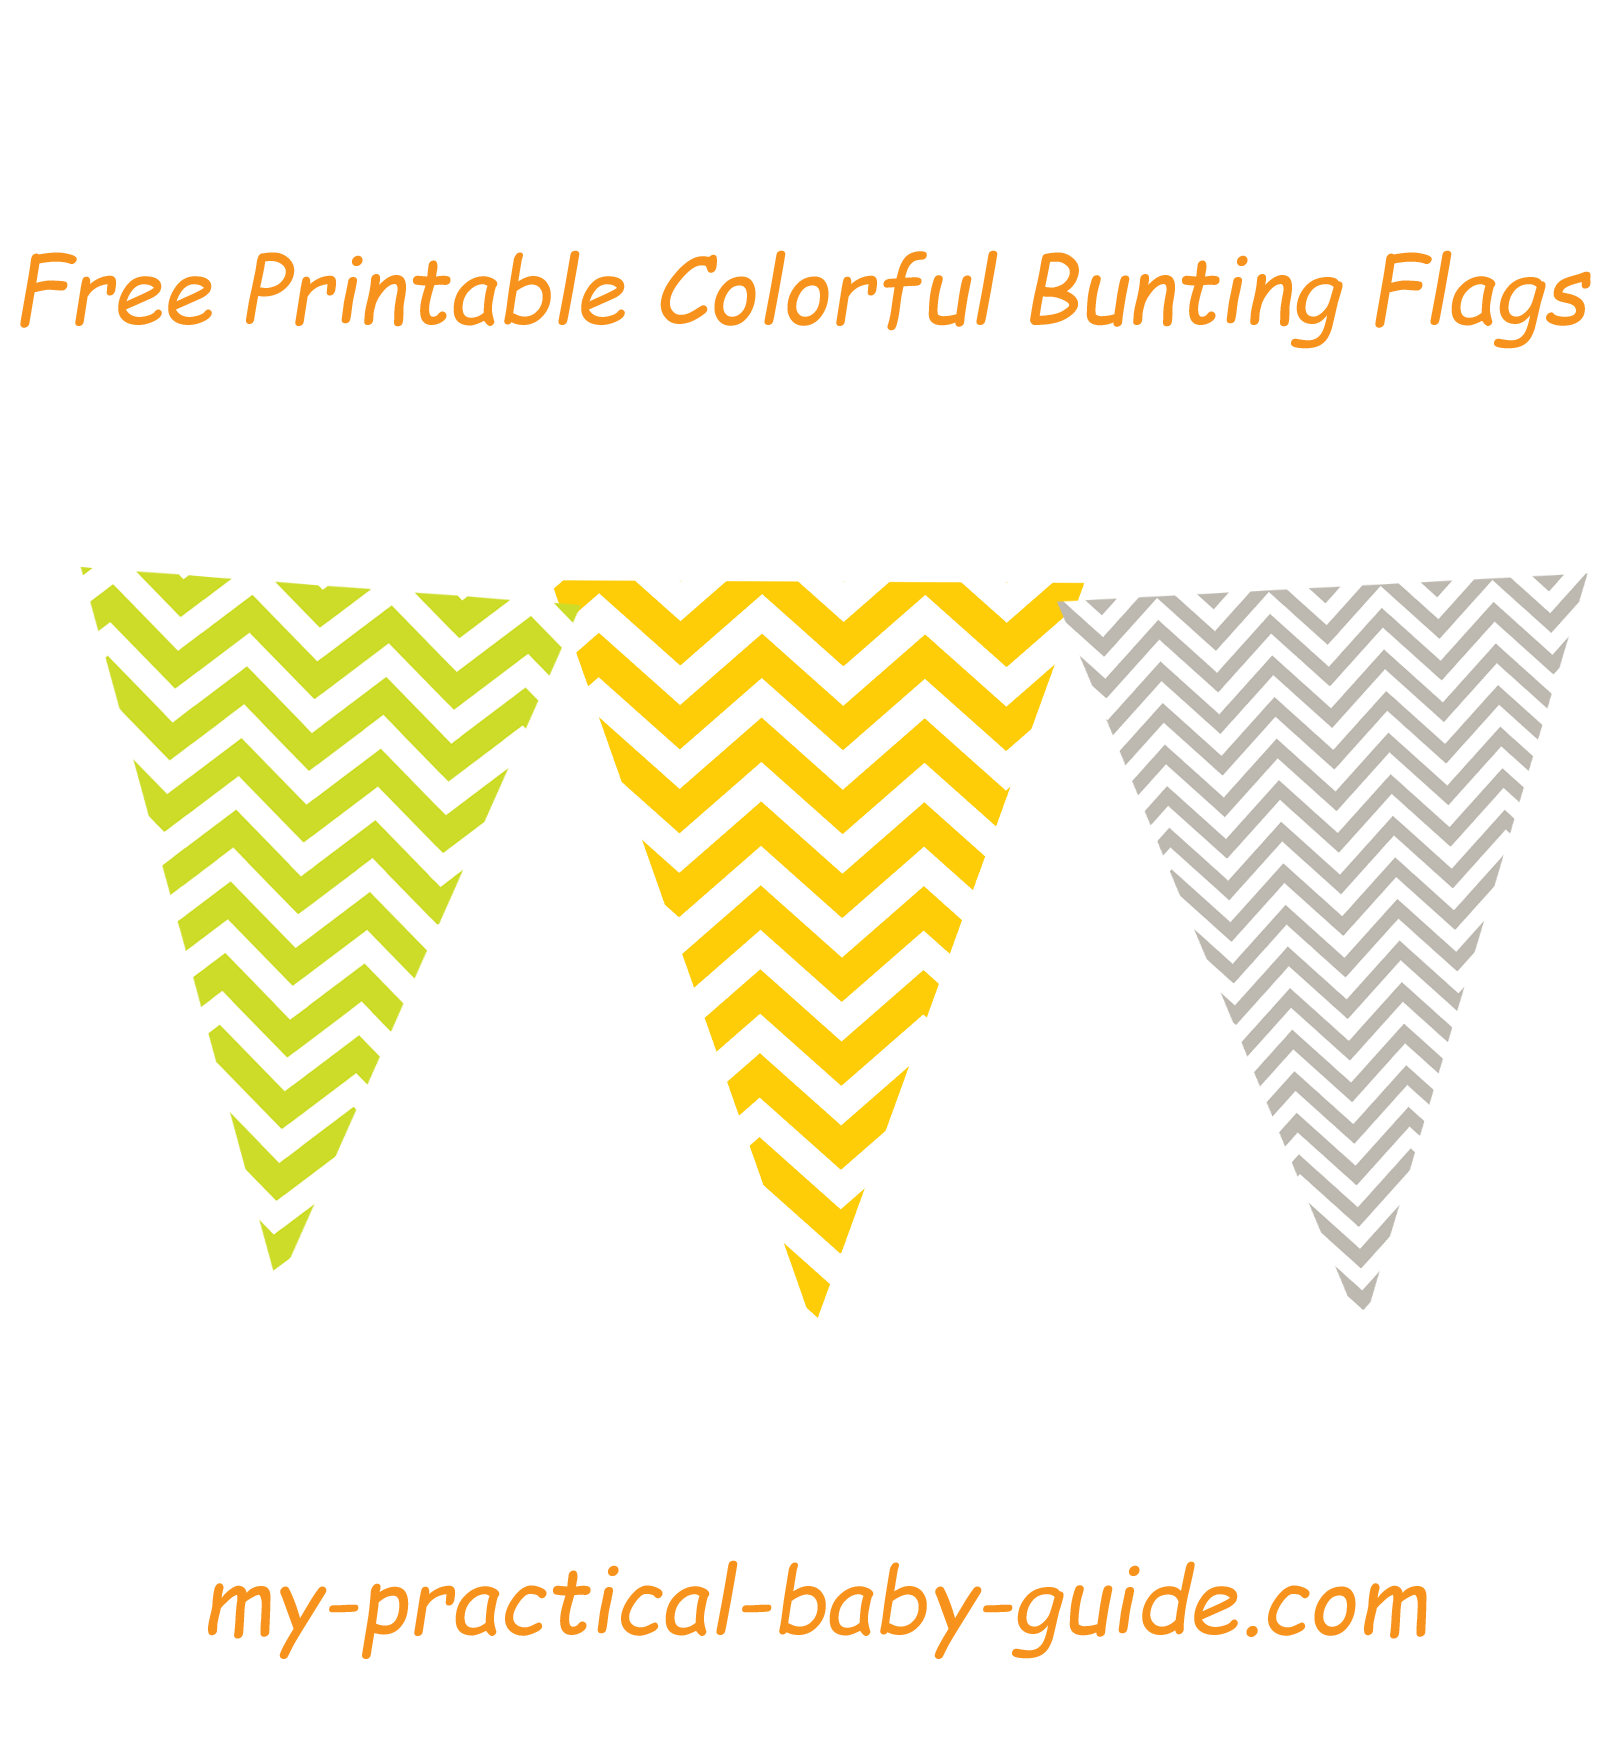 Free Printable Colorful Chevron Bunting Flags Lime Green Orange and Gray